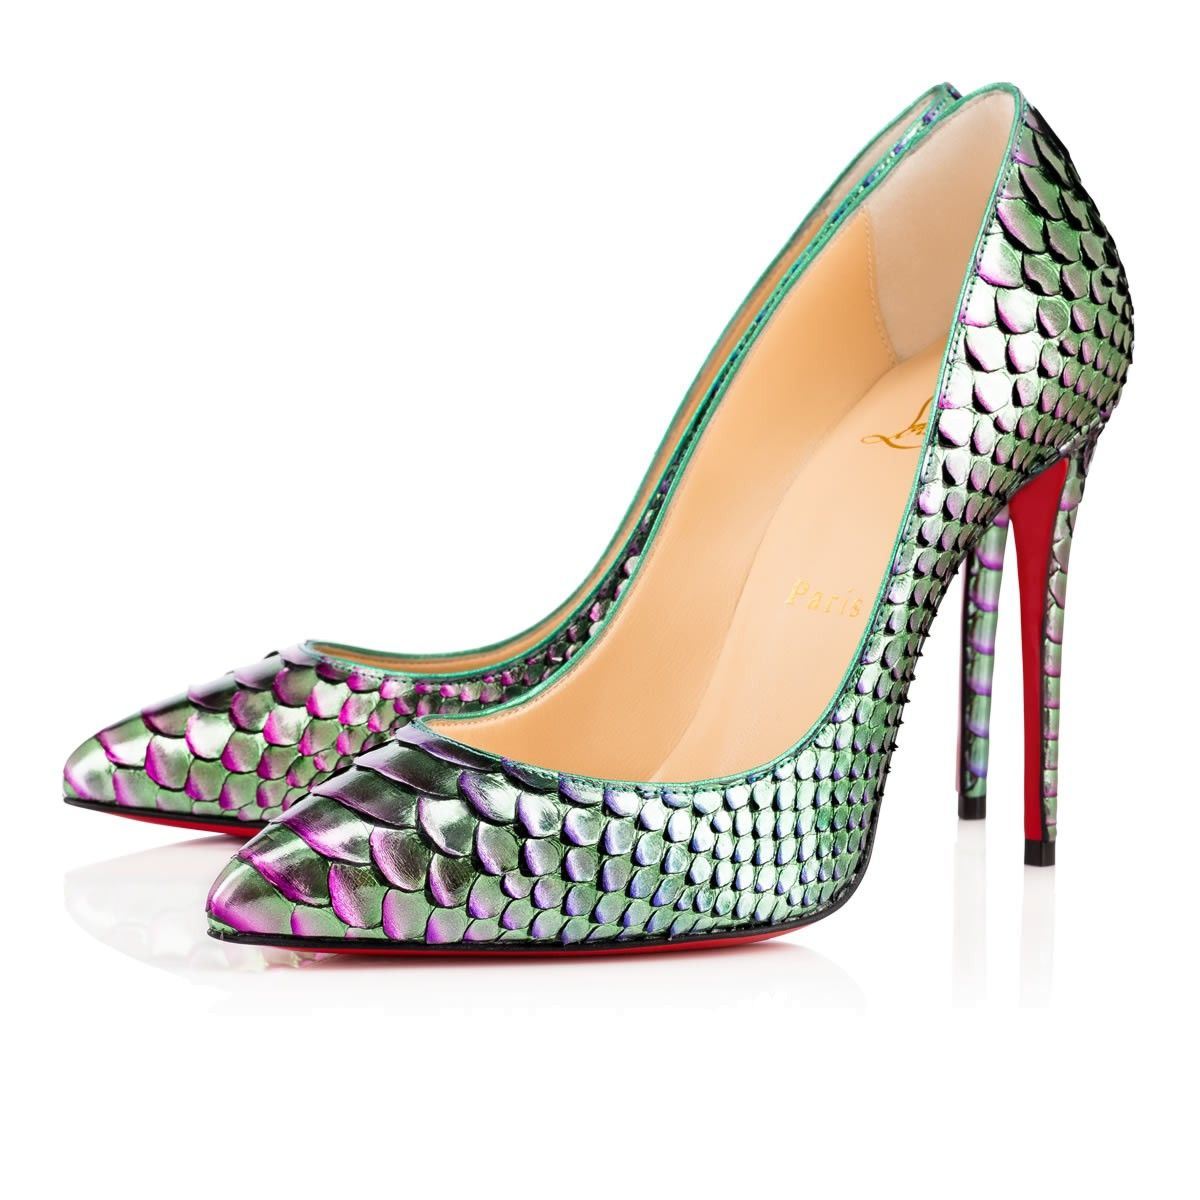 nF41qCG Christian Louboutin Daffodile 160mm Platforms Multicolor Outlet Online